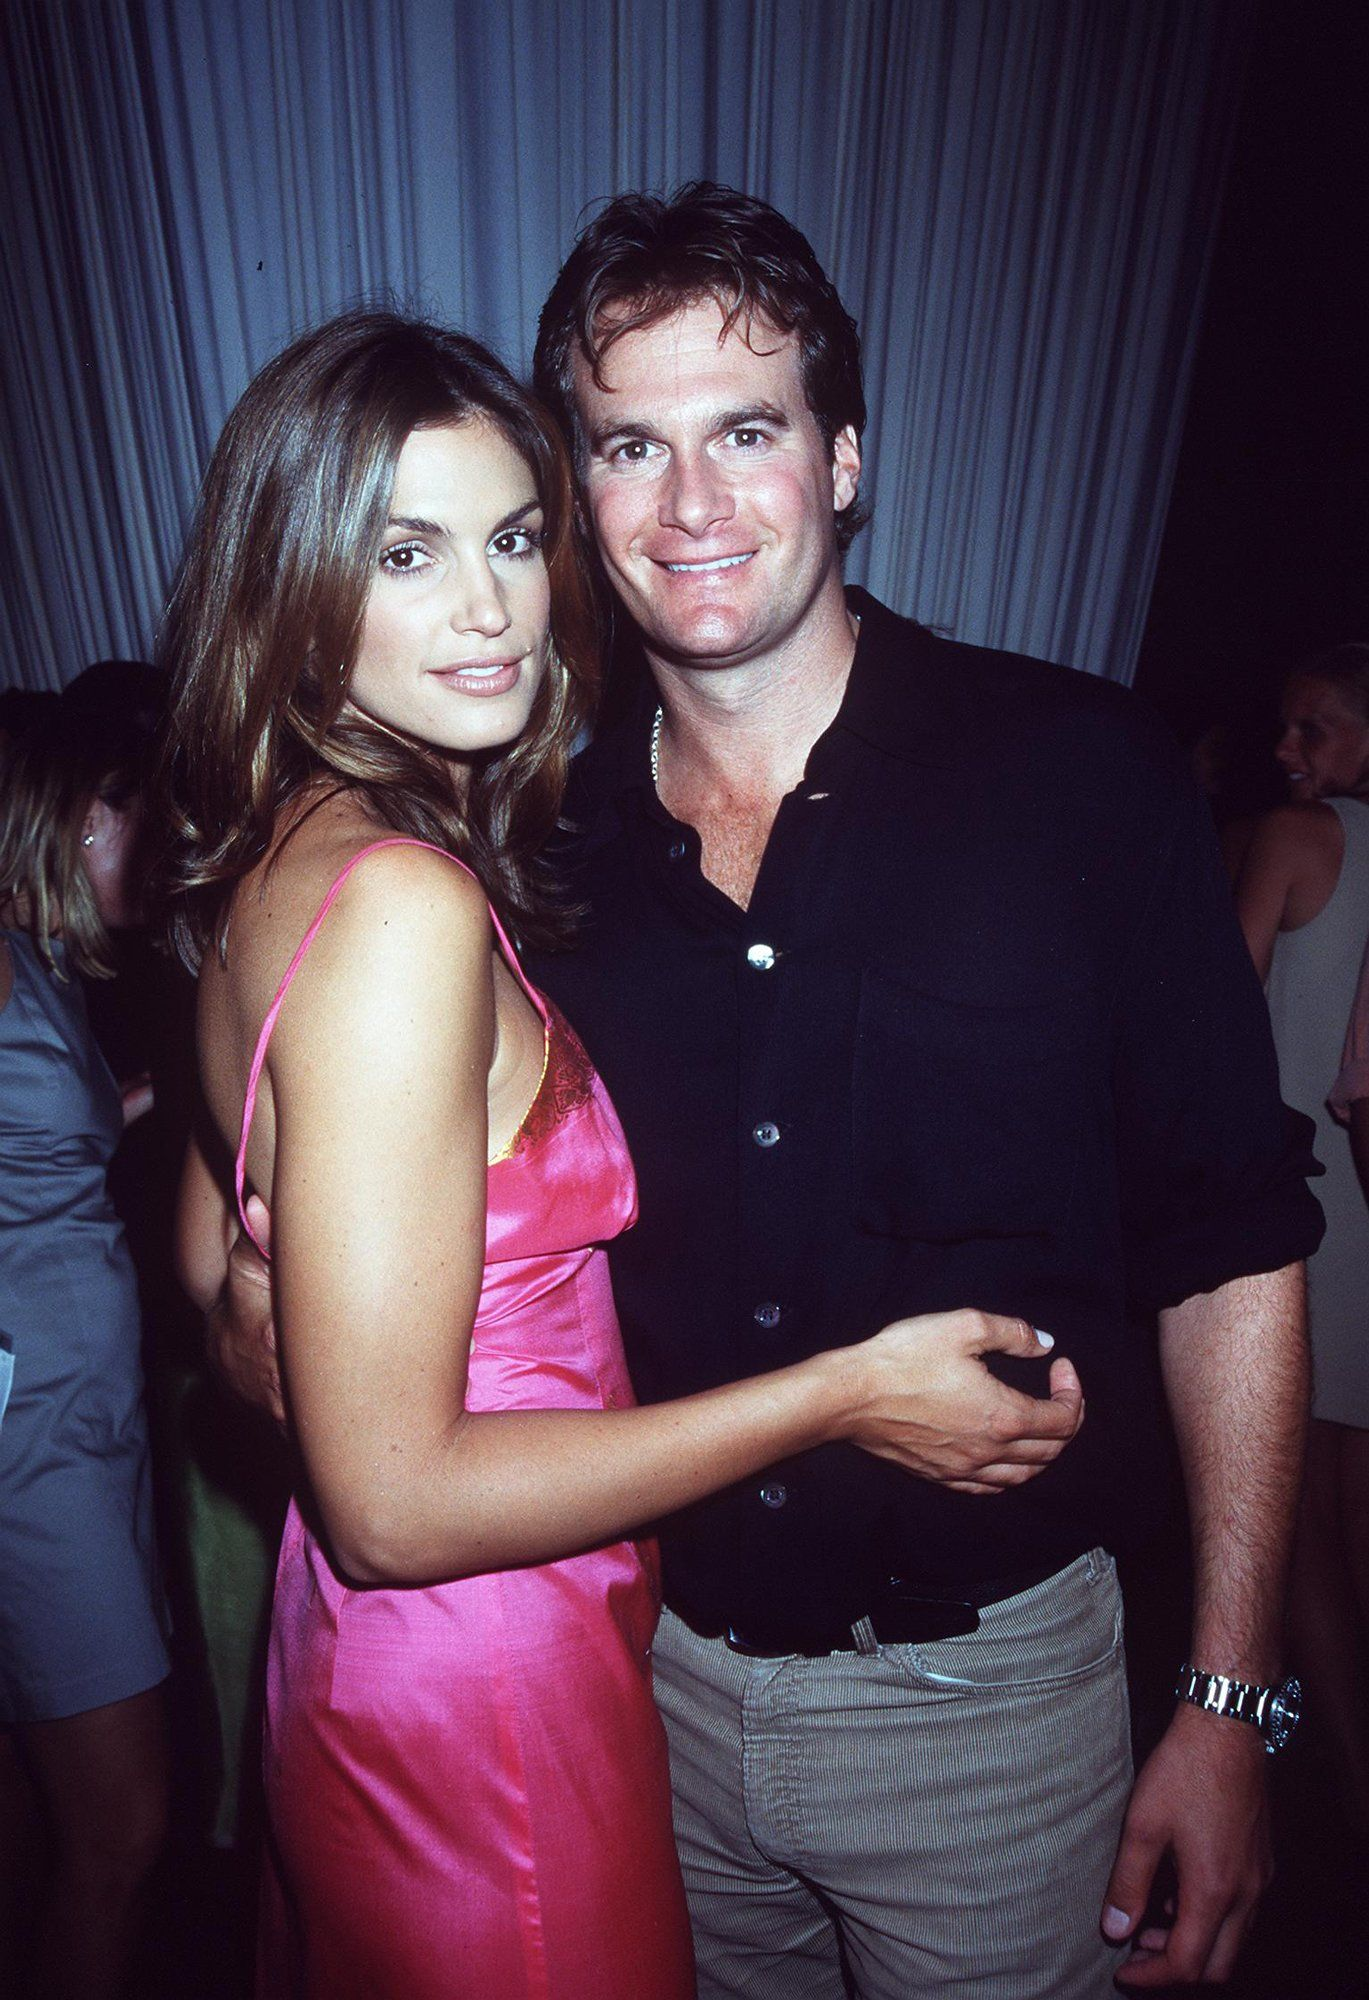 "Cindy Crawford and Rande Gerber - After the supermodel ended her marriage to Richard Gere, she tied the knot with nightlife giant Rande Gerber in 1998. Last year on their anniversary, Crawford wrote on her Instagram, ""17 years ago we decided to jump into life together. Happy anniversary, babe. I love you!"""